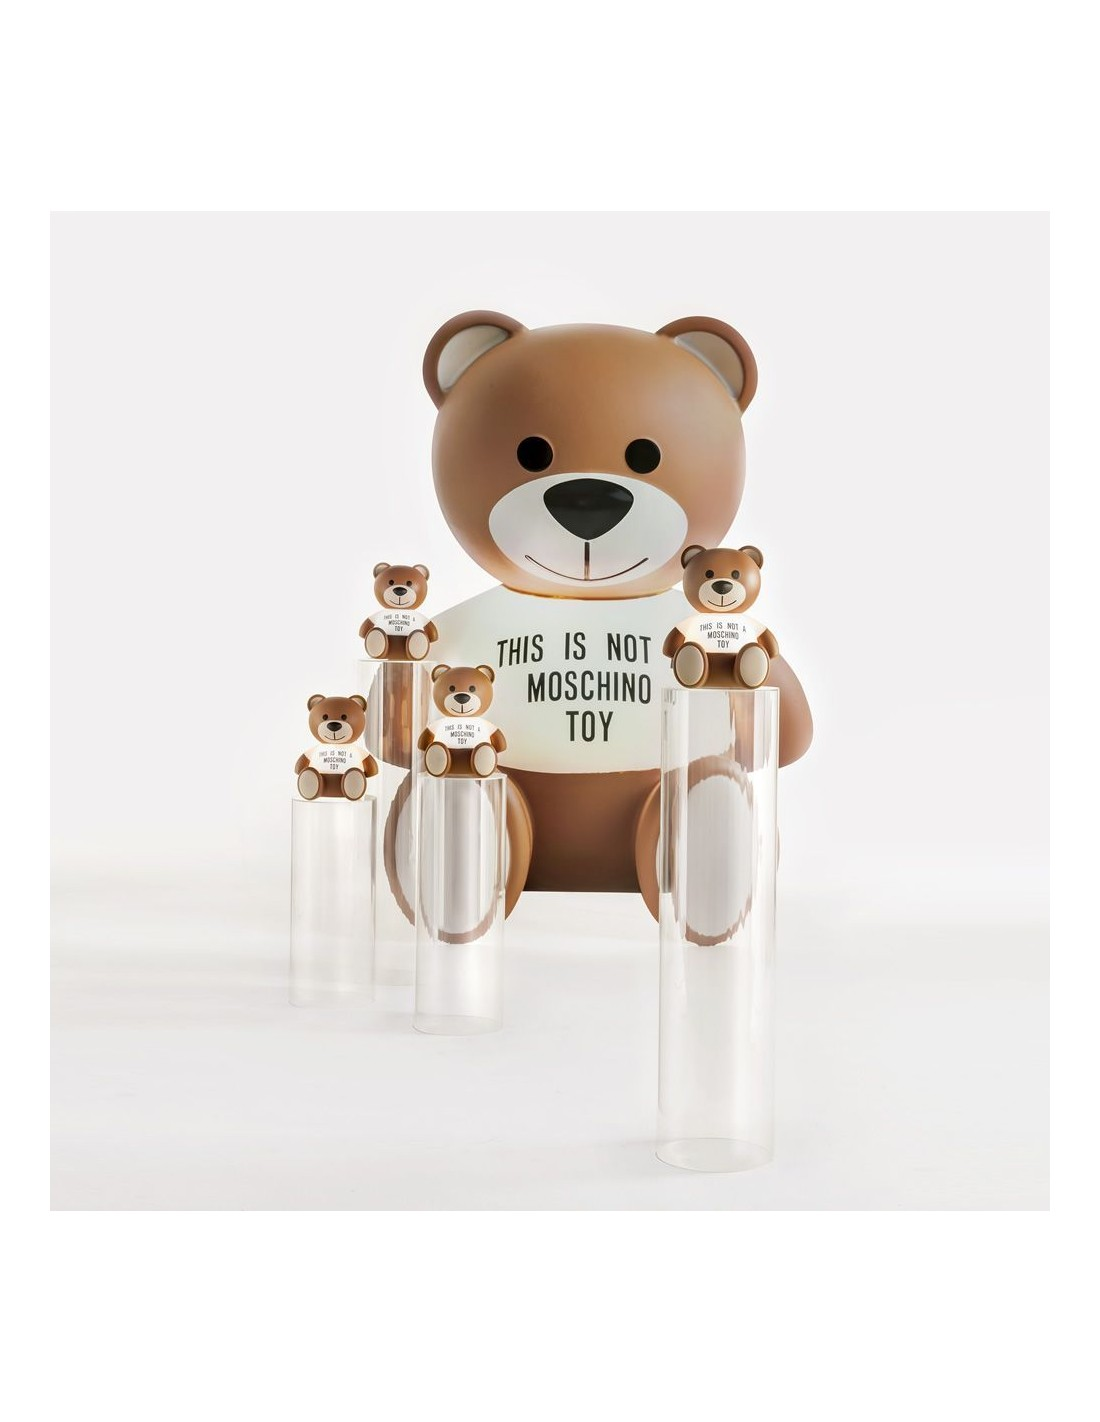 Lampe Toy Moschino de Kartell